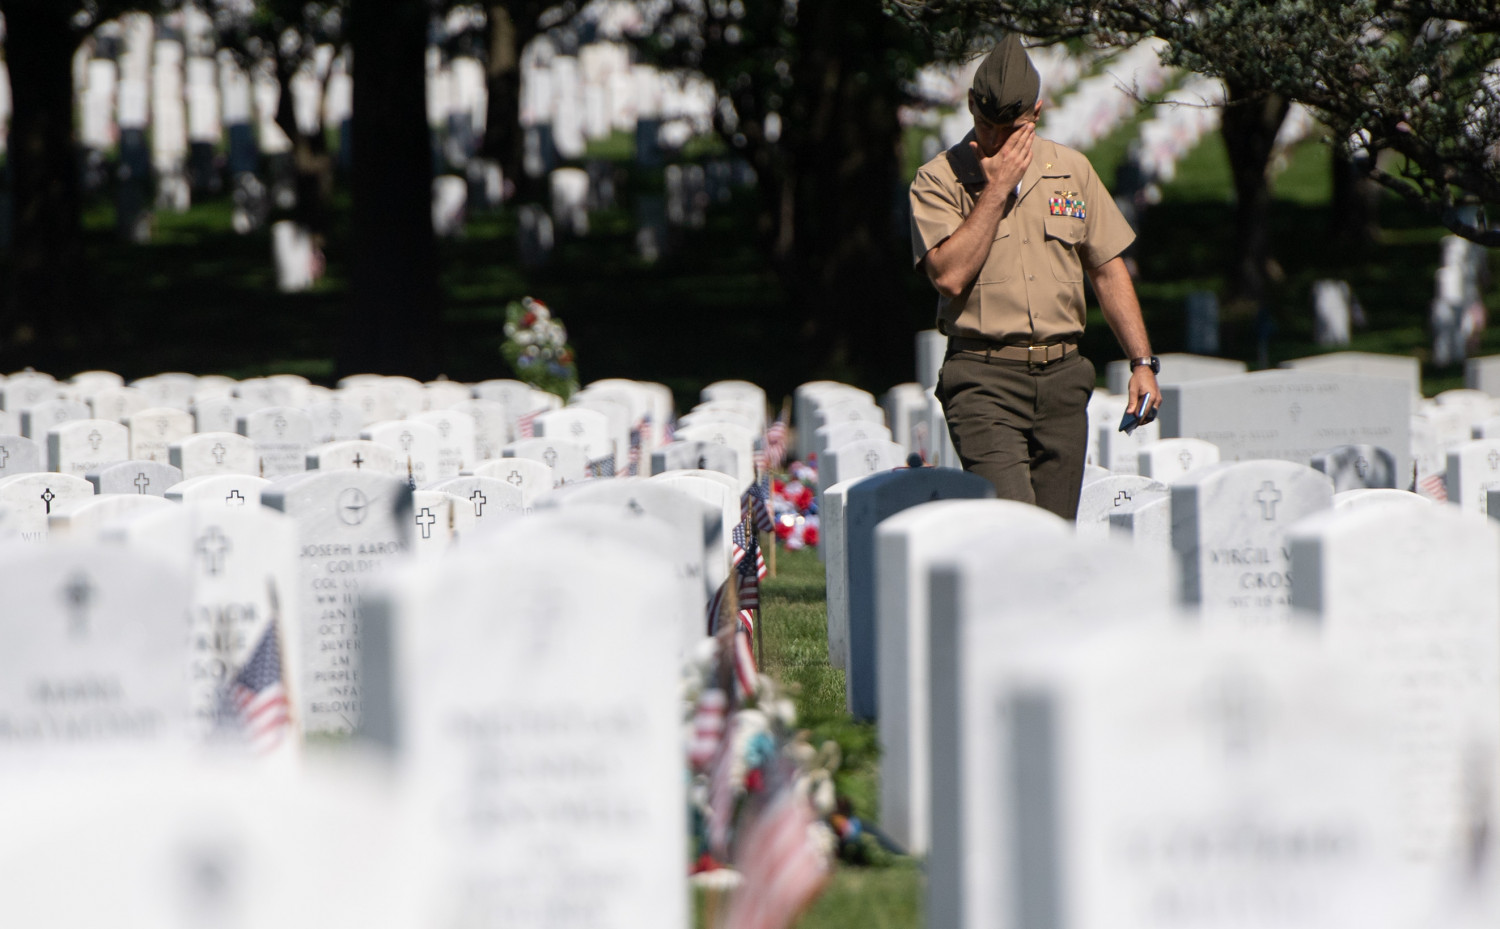 'I'll Do It Over Again If I Need To:' Veterans on Patriotism and Sacrifice